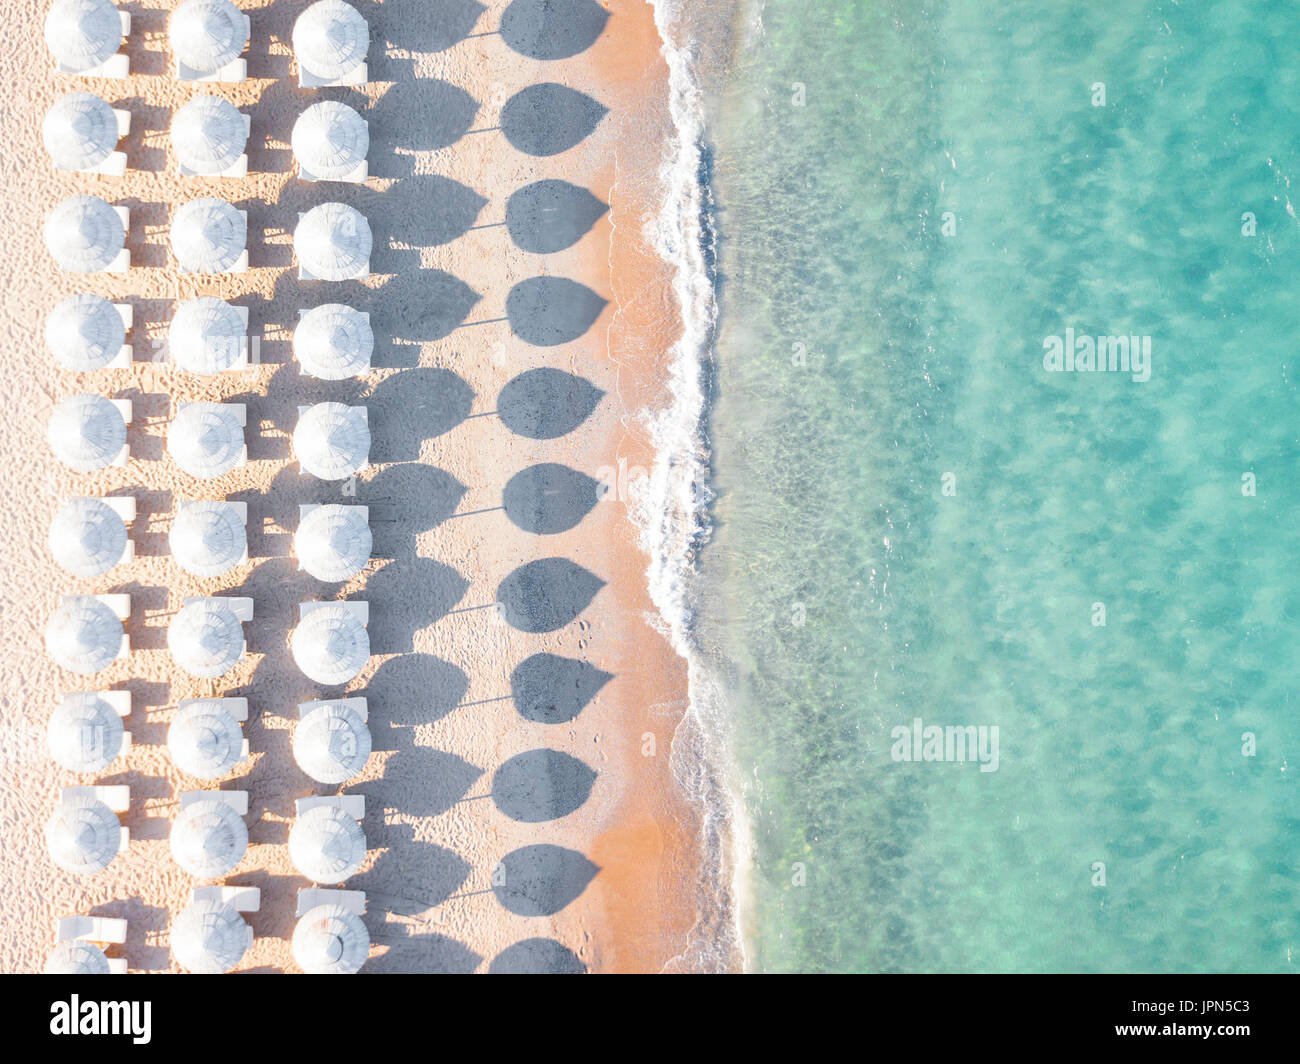 Aerial view of amazing beach with white umbrellas and turquoise sea at sunset. Mediterranean sea, Sardinia, Italy. - Stock Image